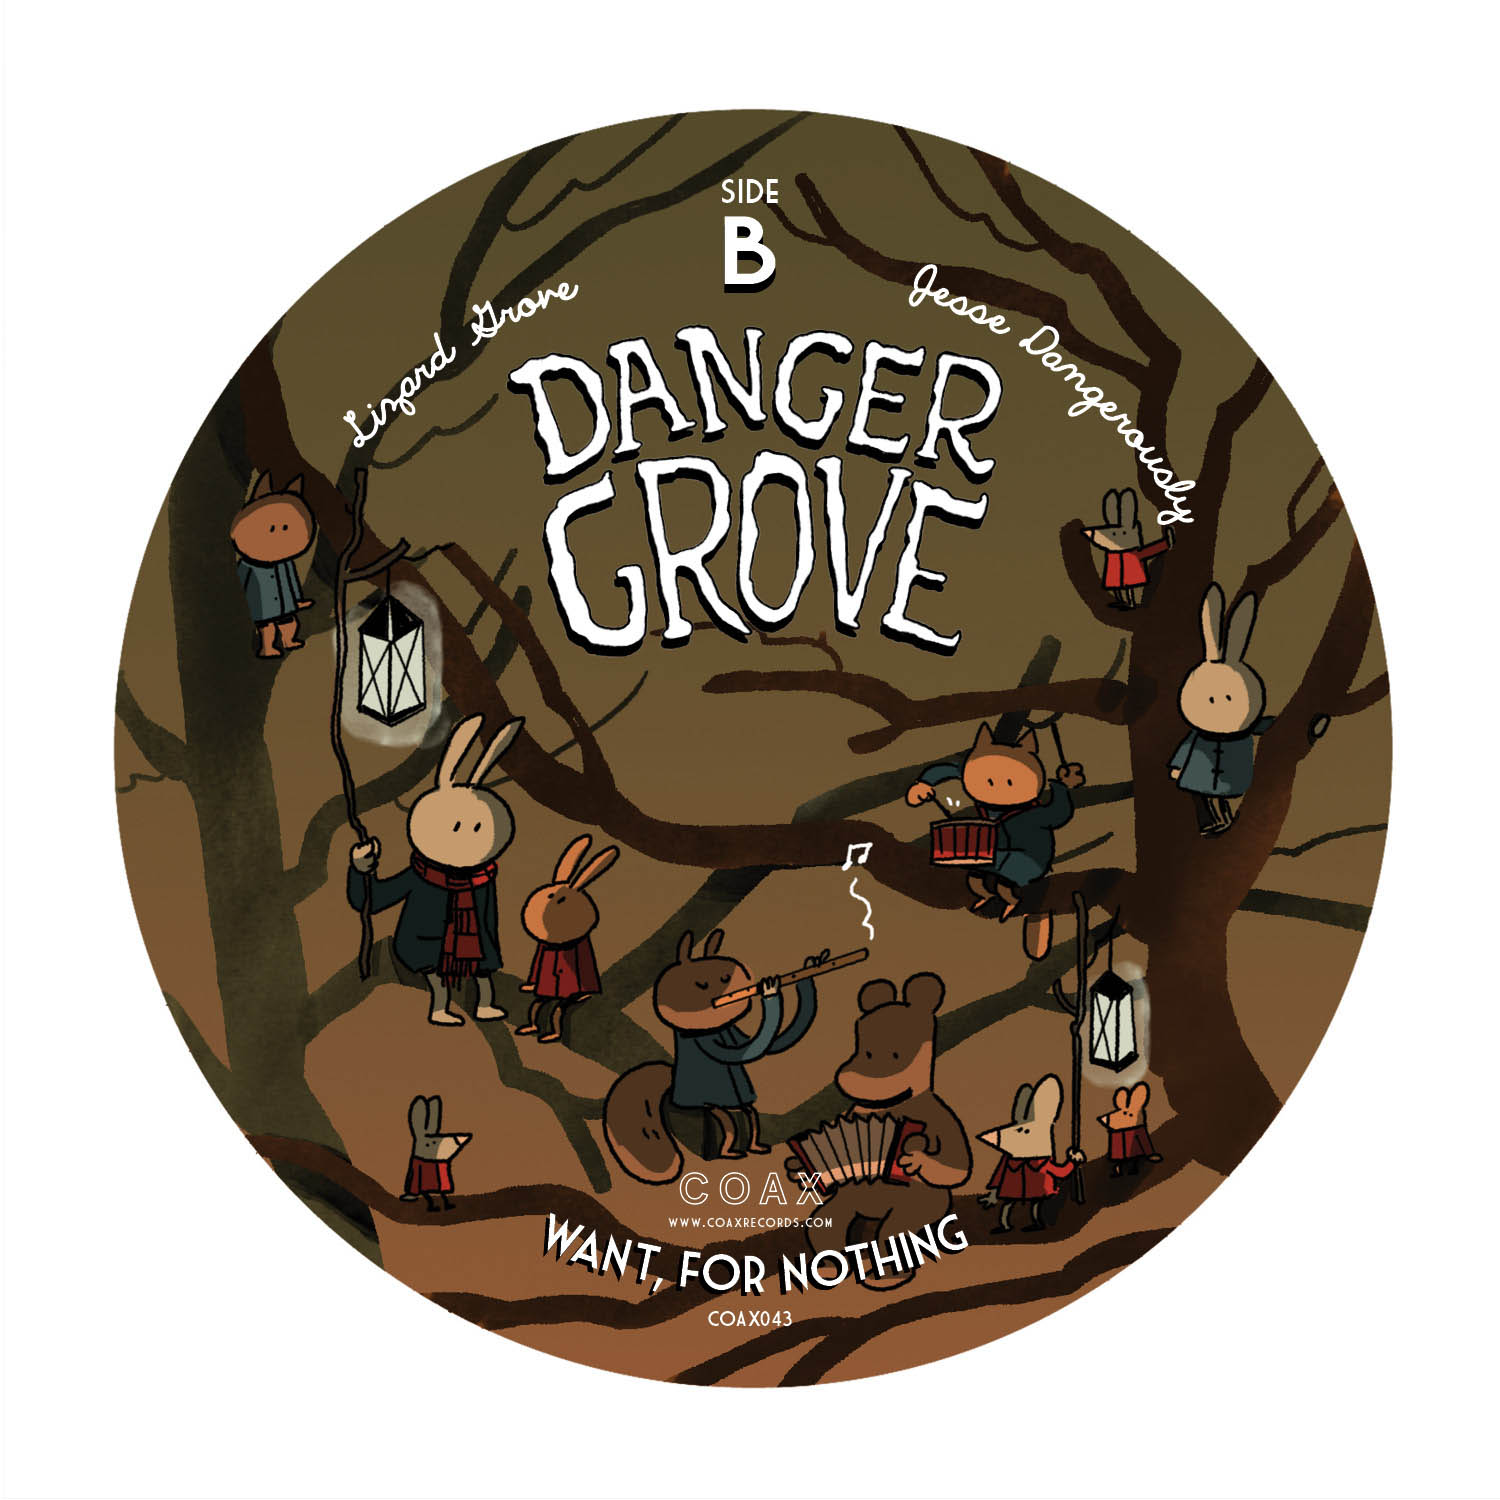 Label for Danger Grove record release